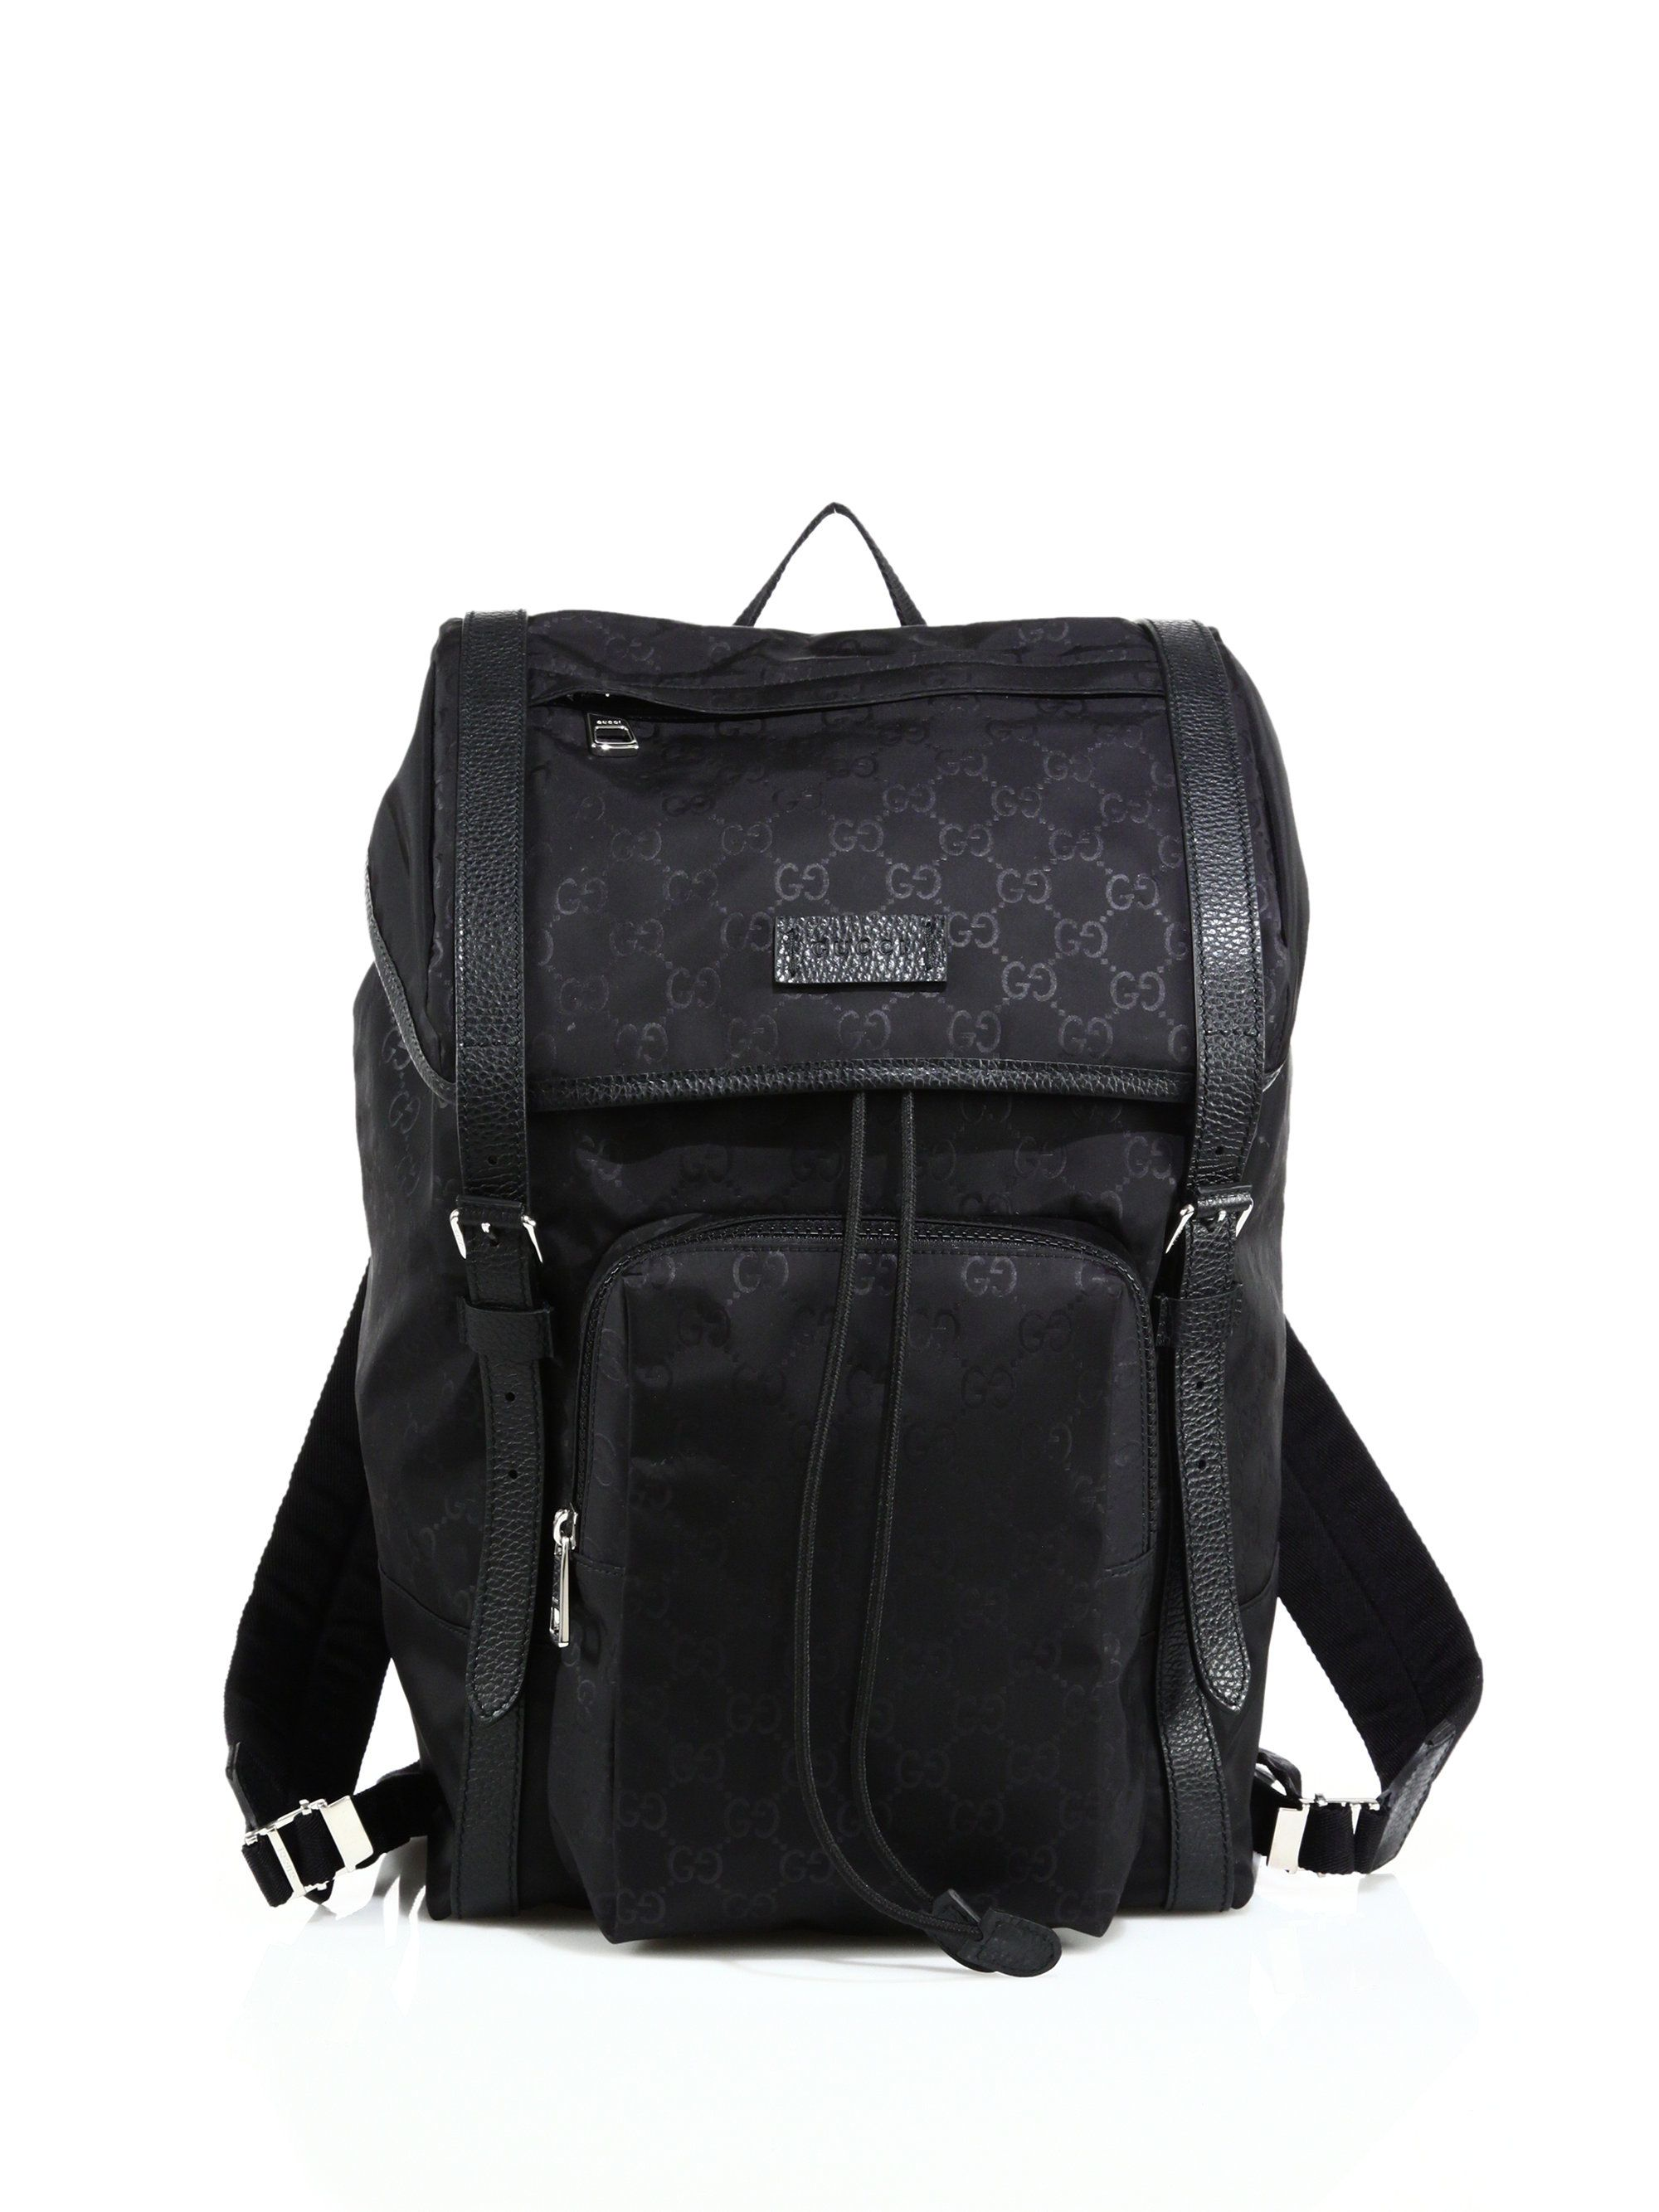 ea5b7e9f914 Gucci Nylon Sima Backpack in Black